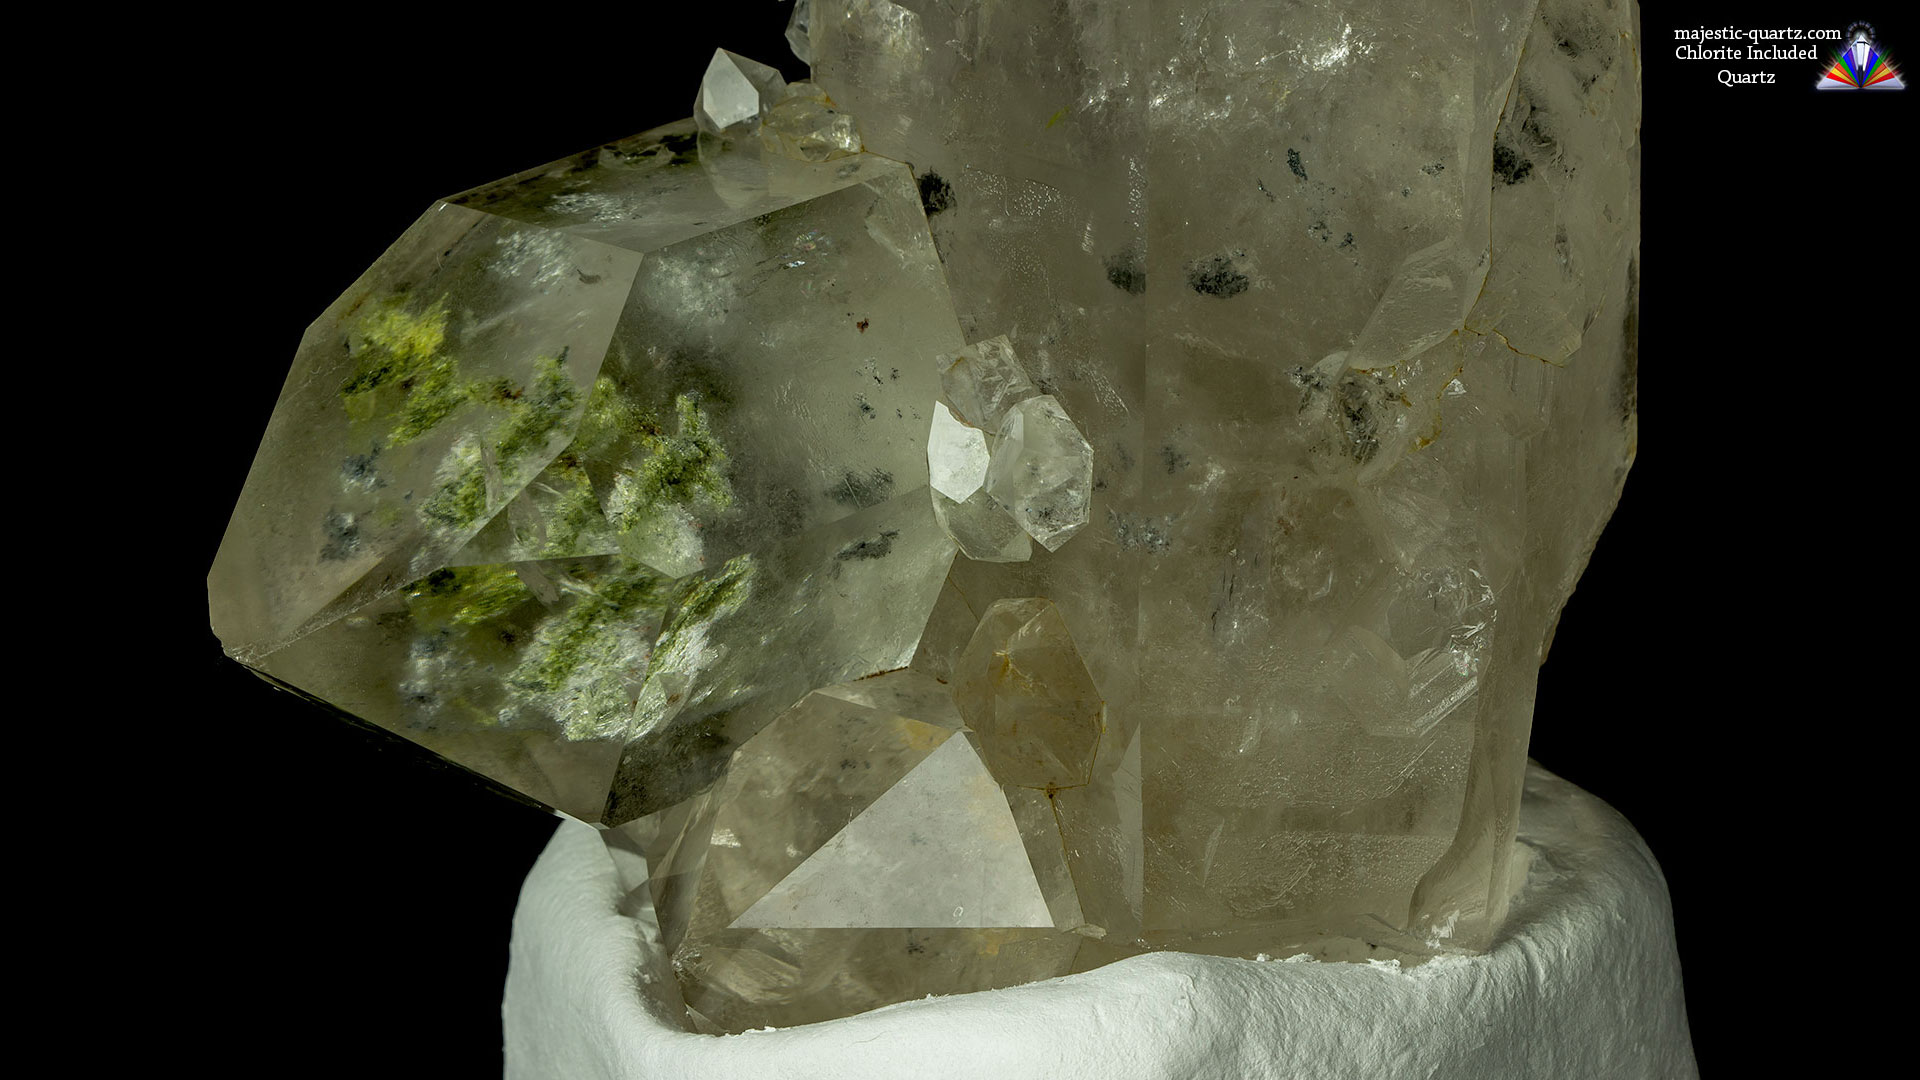 Chlorite Included Quartz Properties and Meaning + Photos